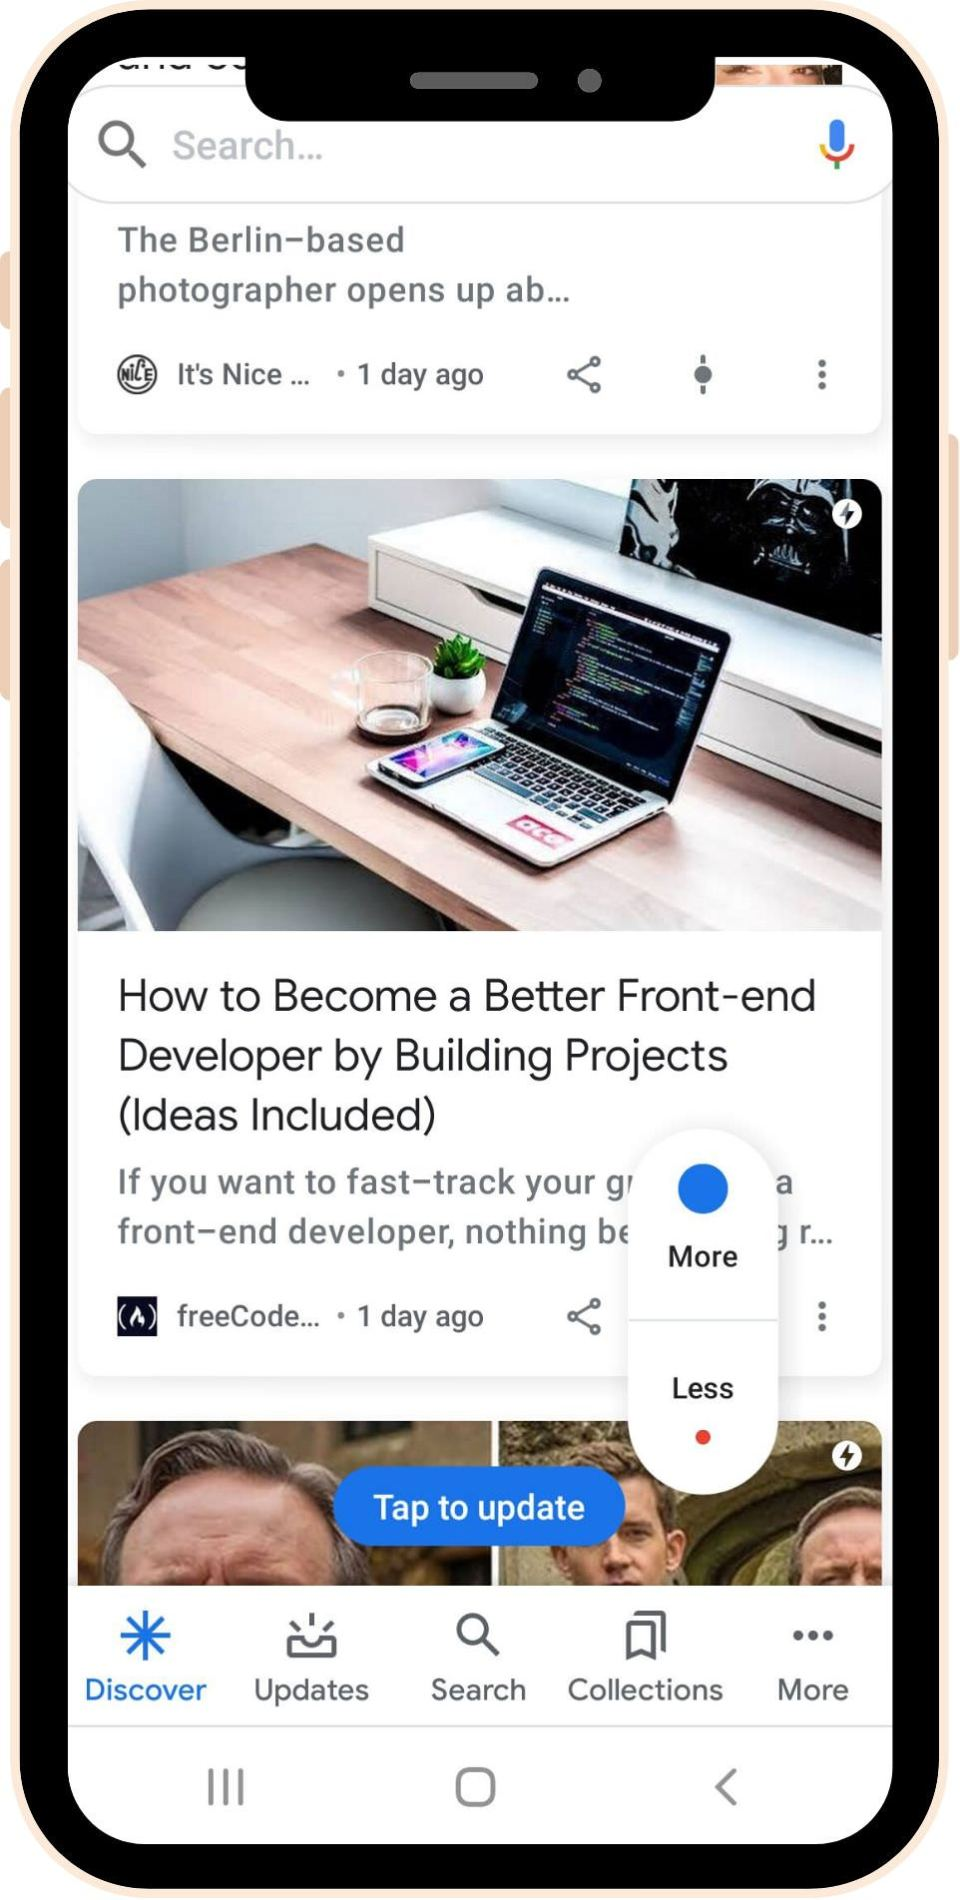 Google Discover screenshot showing a user's feed featuring coding, photography and TV topics - use this as a content marketer